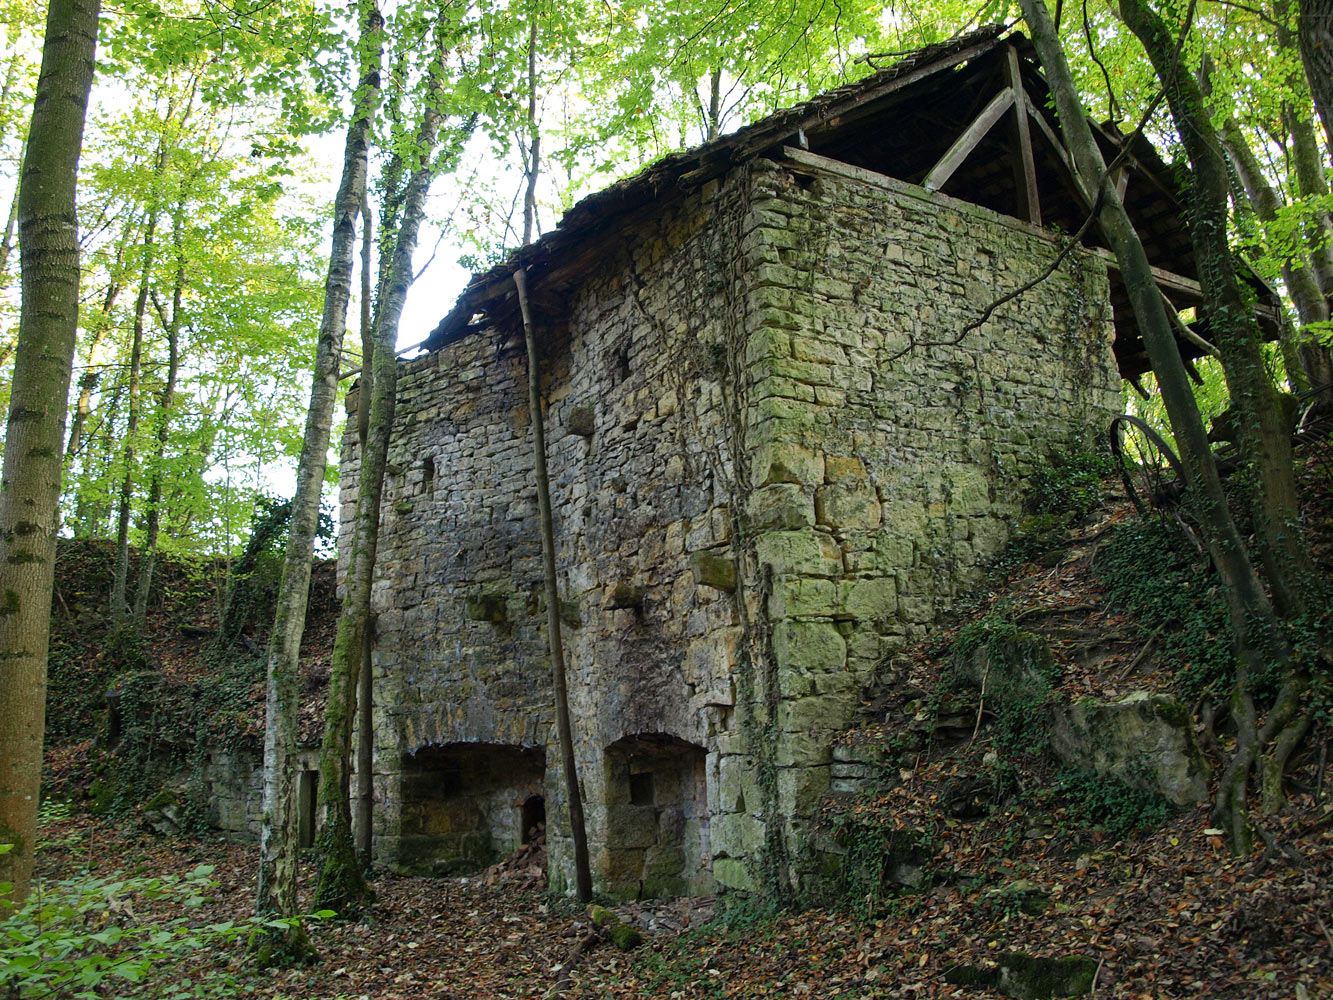 Wittersdorf old lime kiln